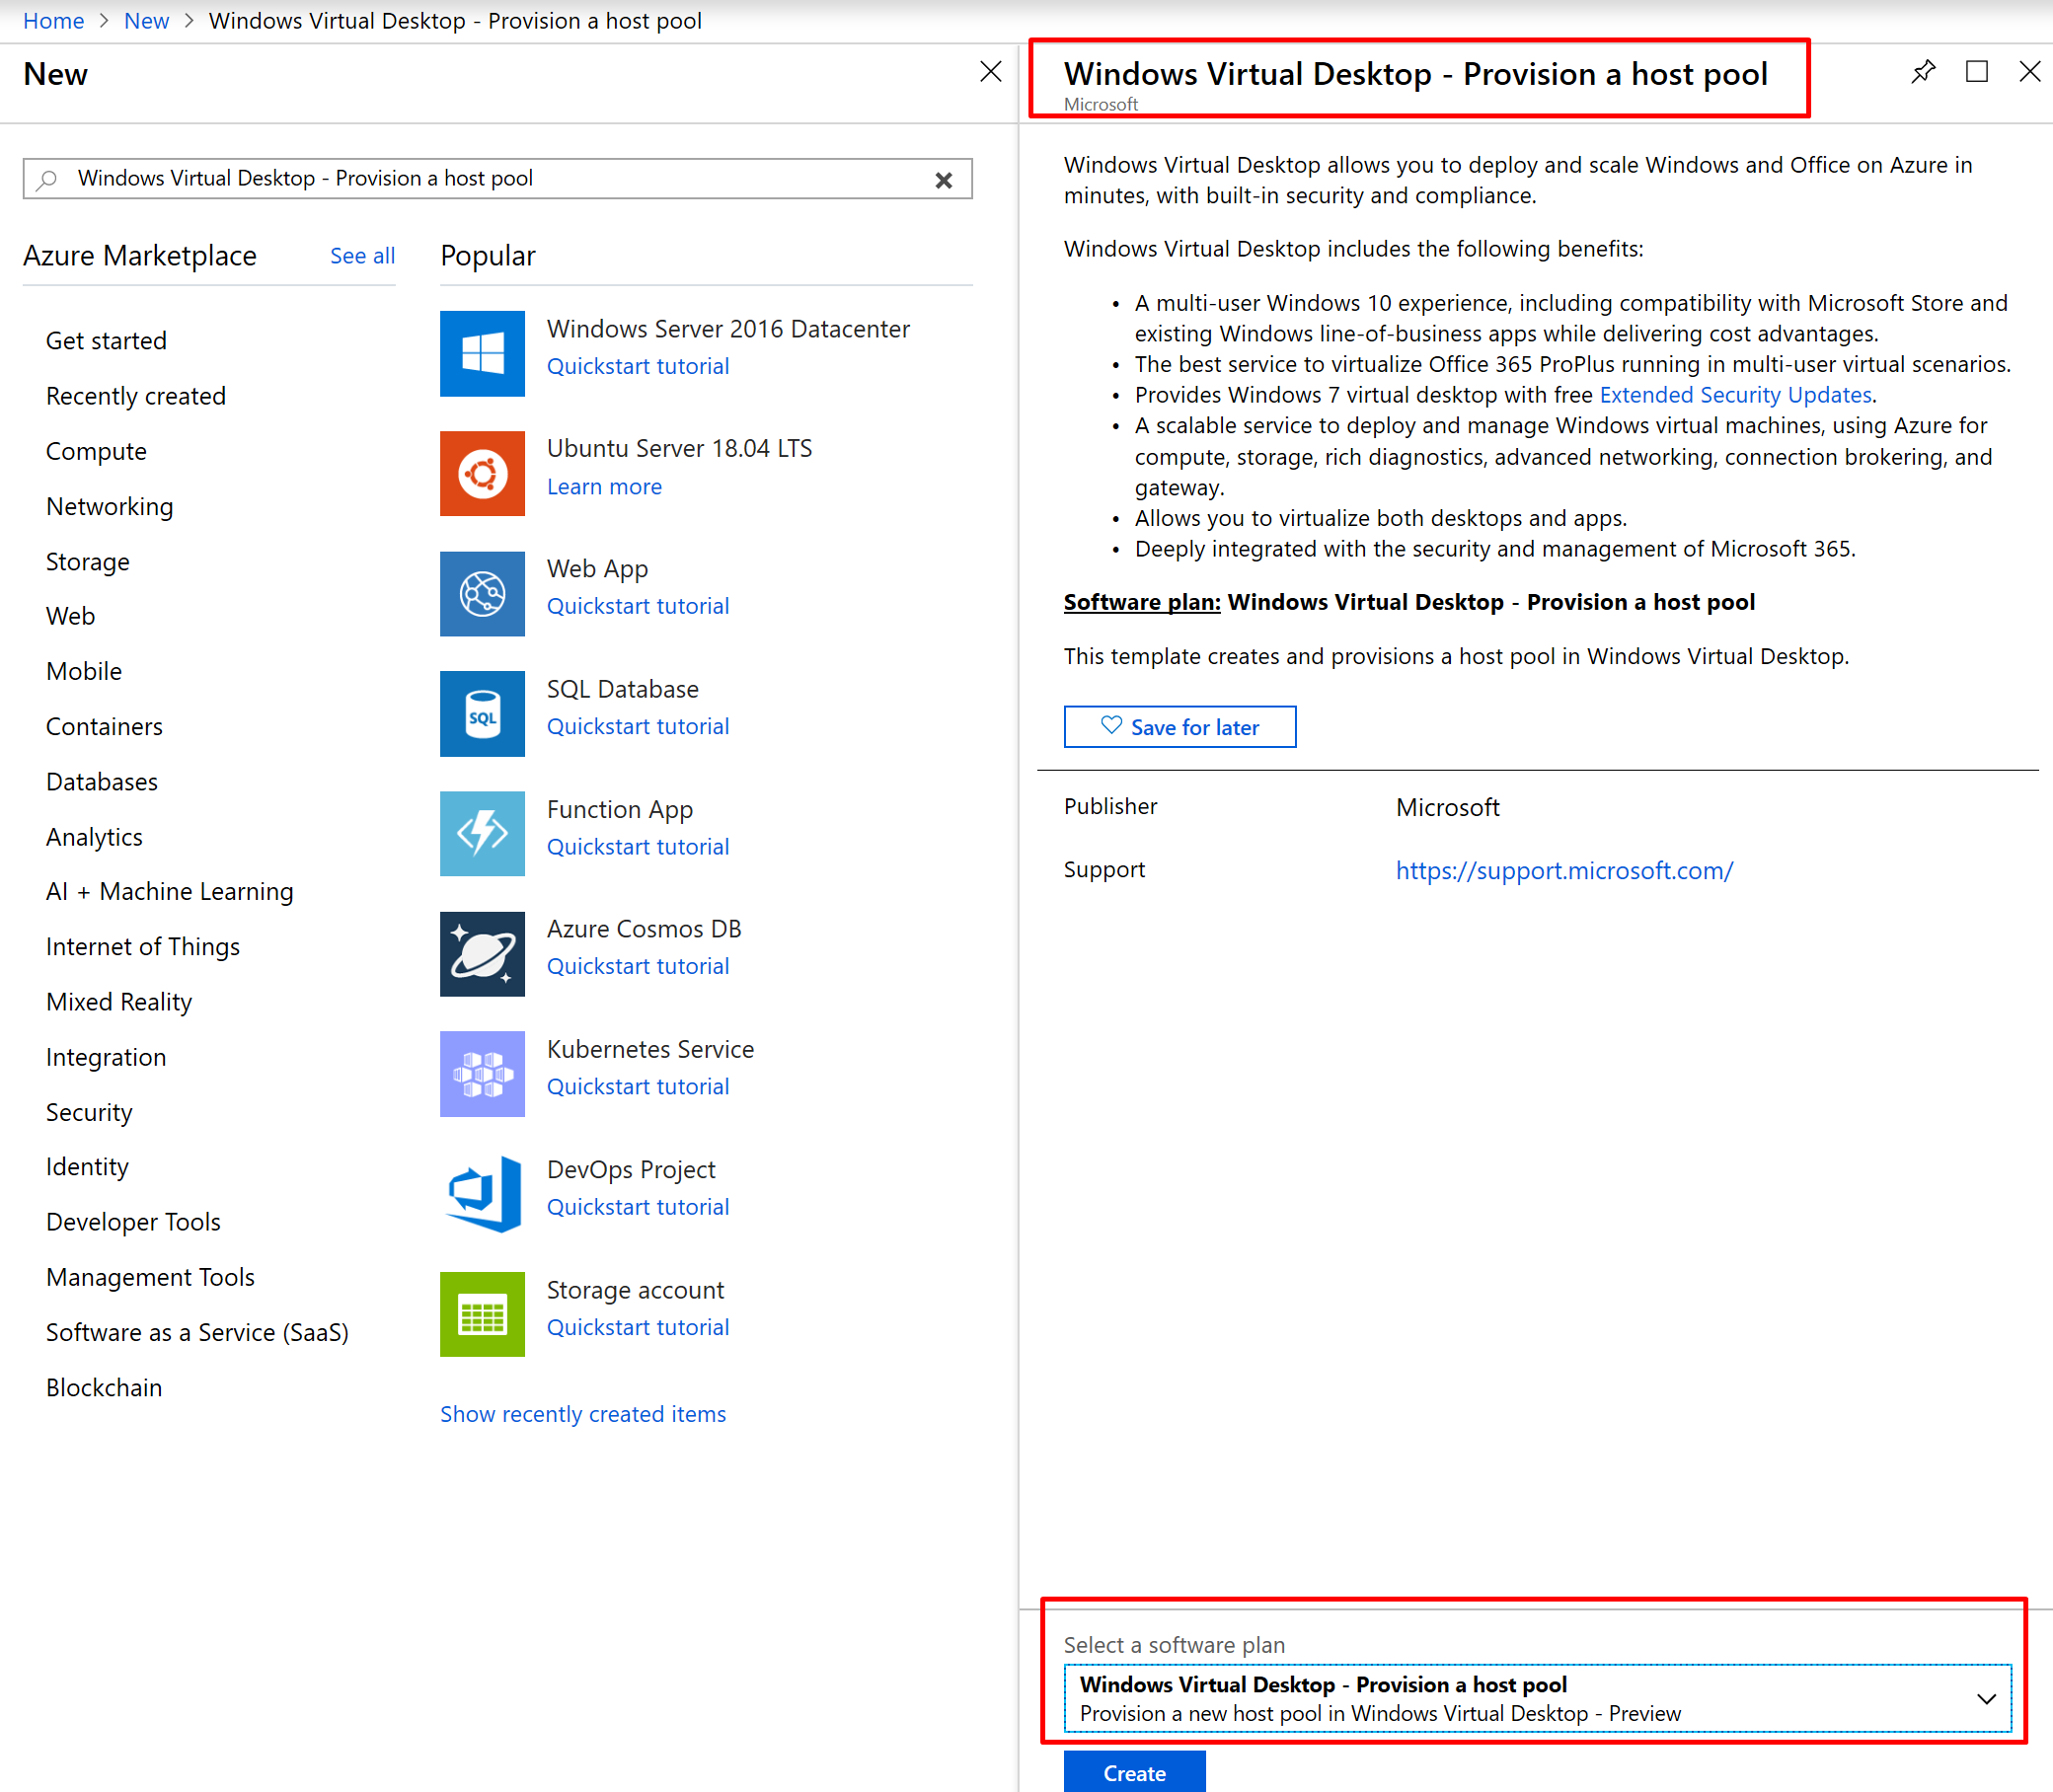 Deploy Windows Virtual Desktop from the Azure Marketplace